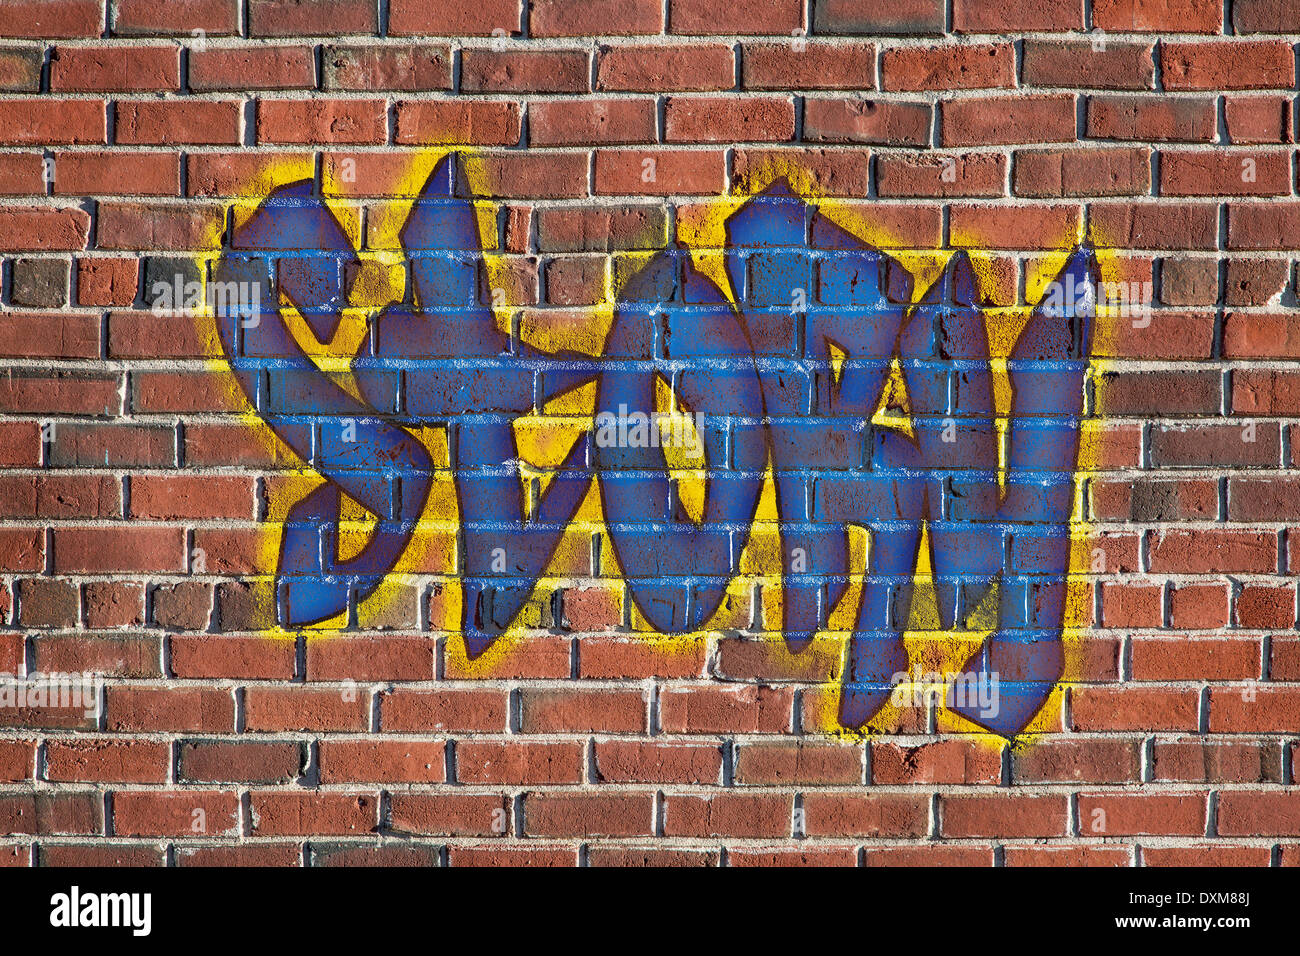 Graffiti wall text - Story Word Graffiti Style Text On A Old Grunge Brick Wall Graphics Created By